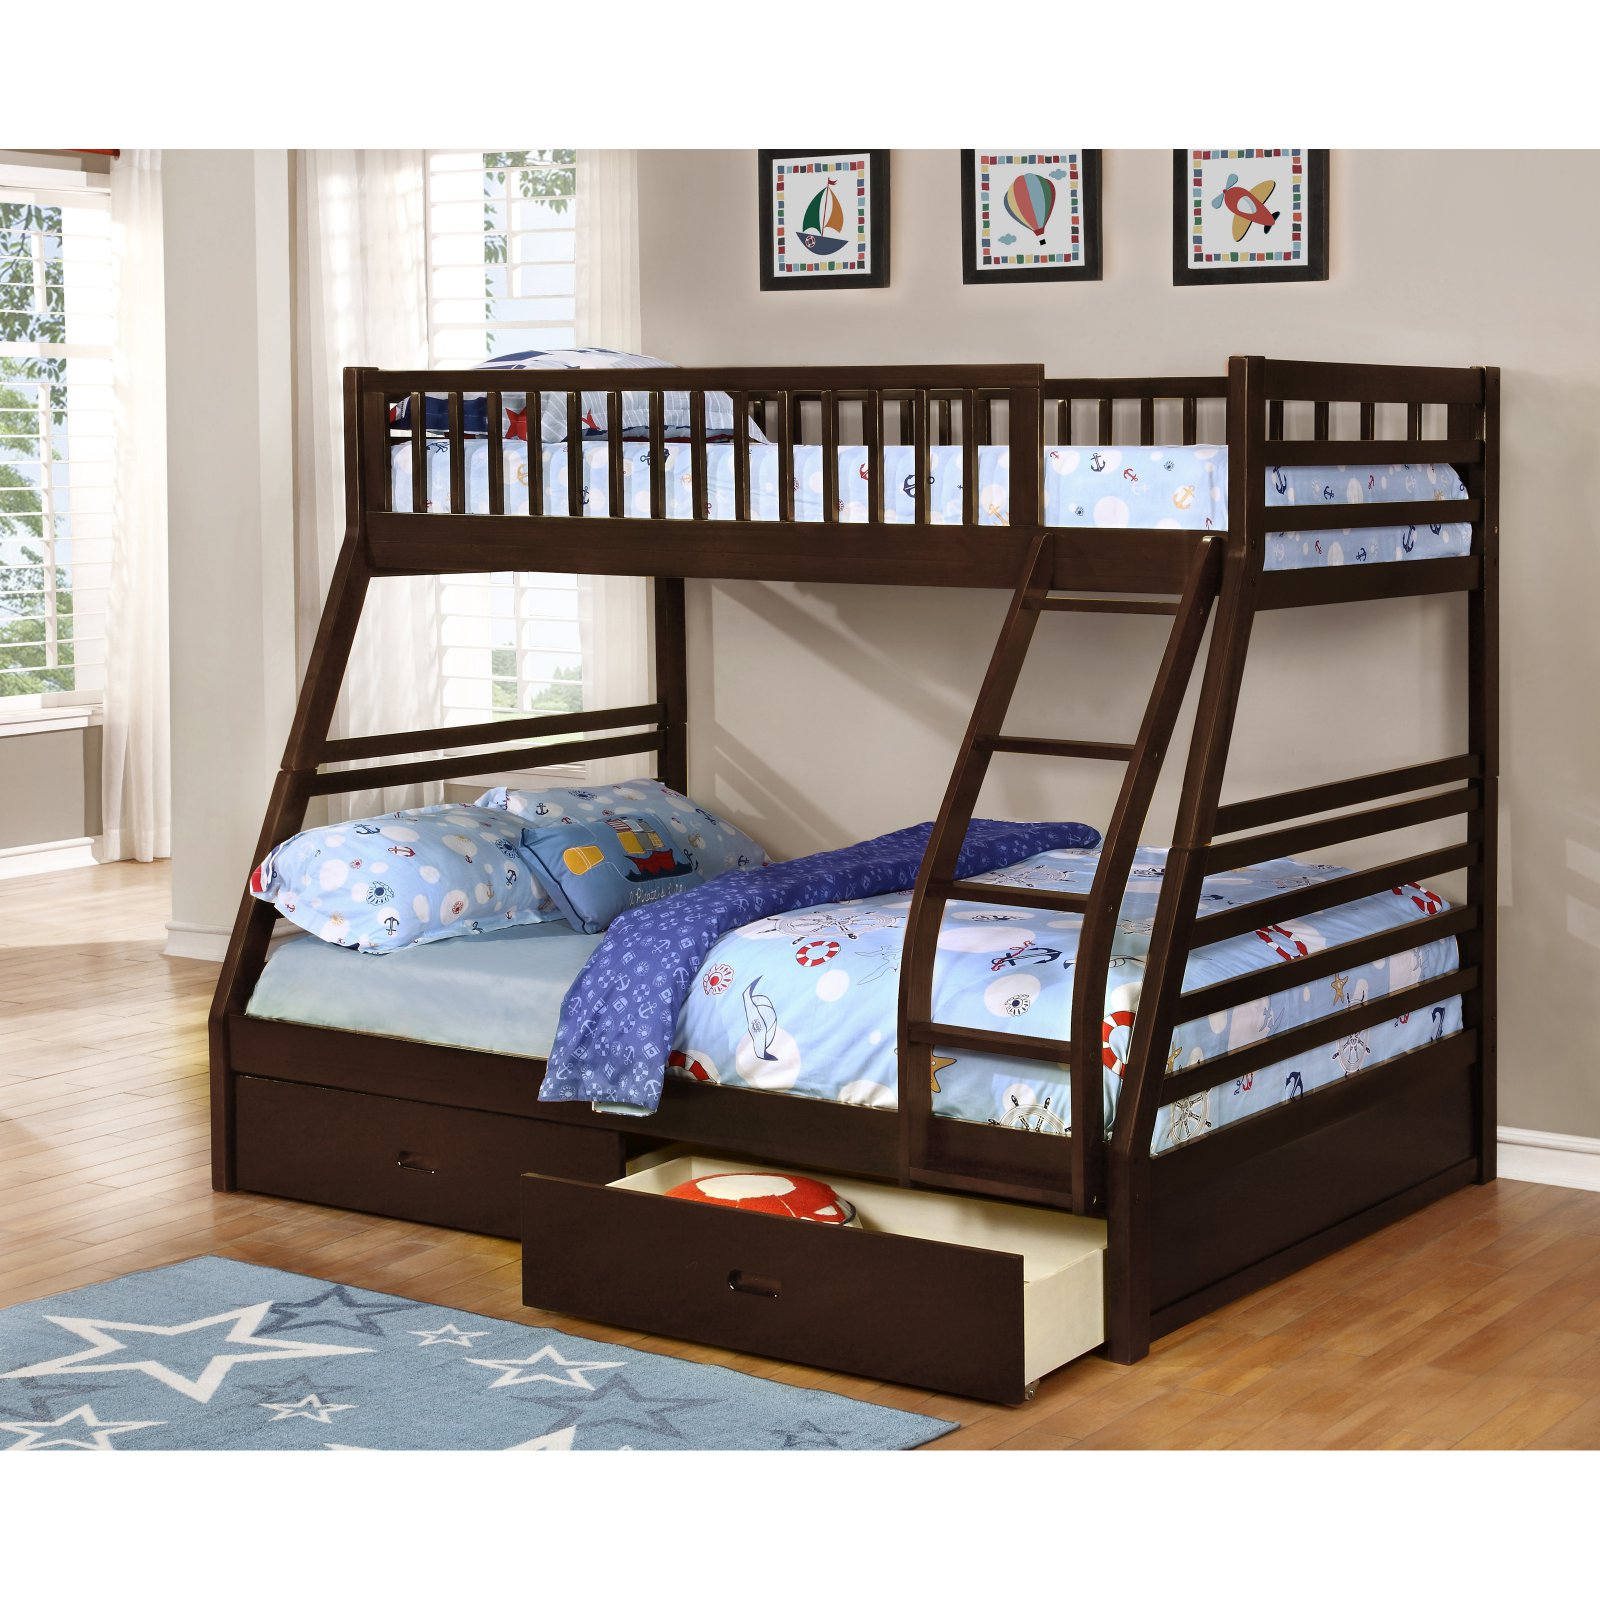 K&B Furniture B130E Twin Over Full Bunk Bed with Under Drawers